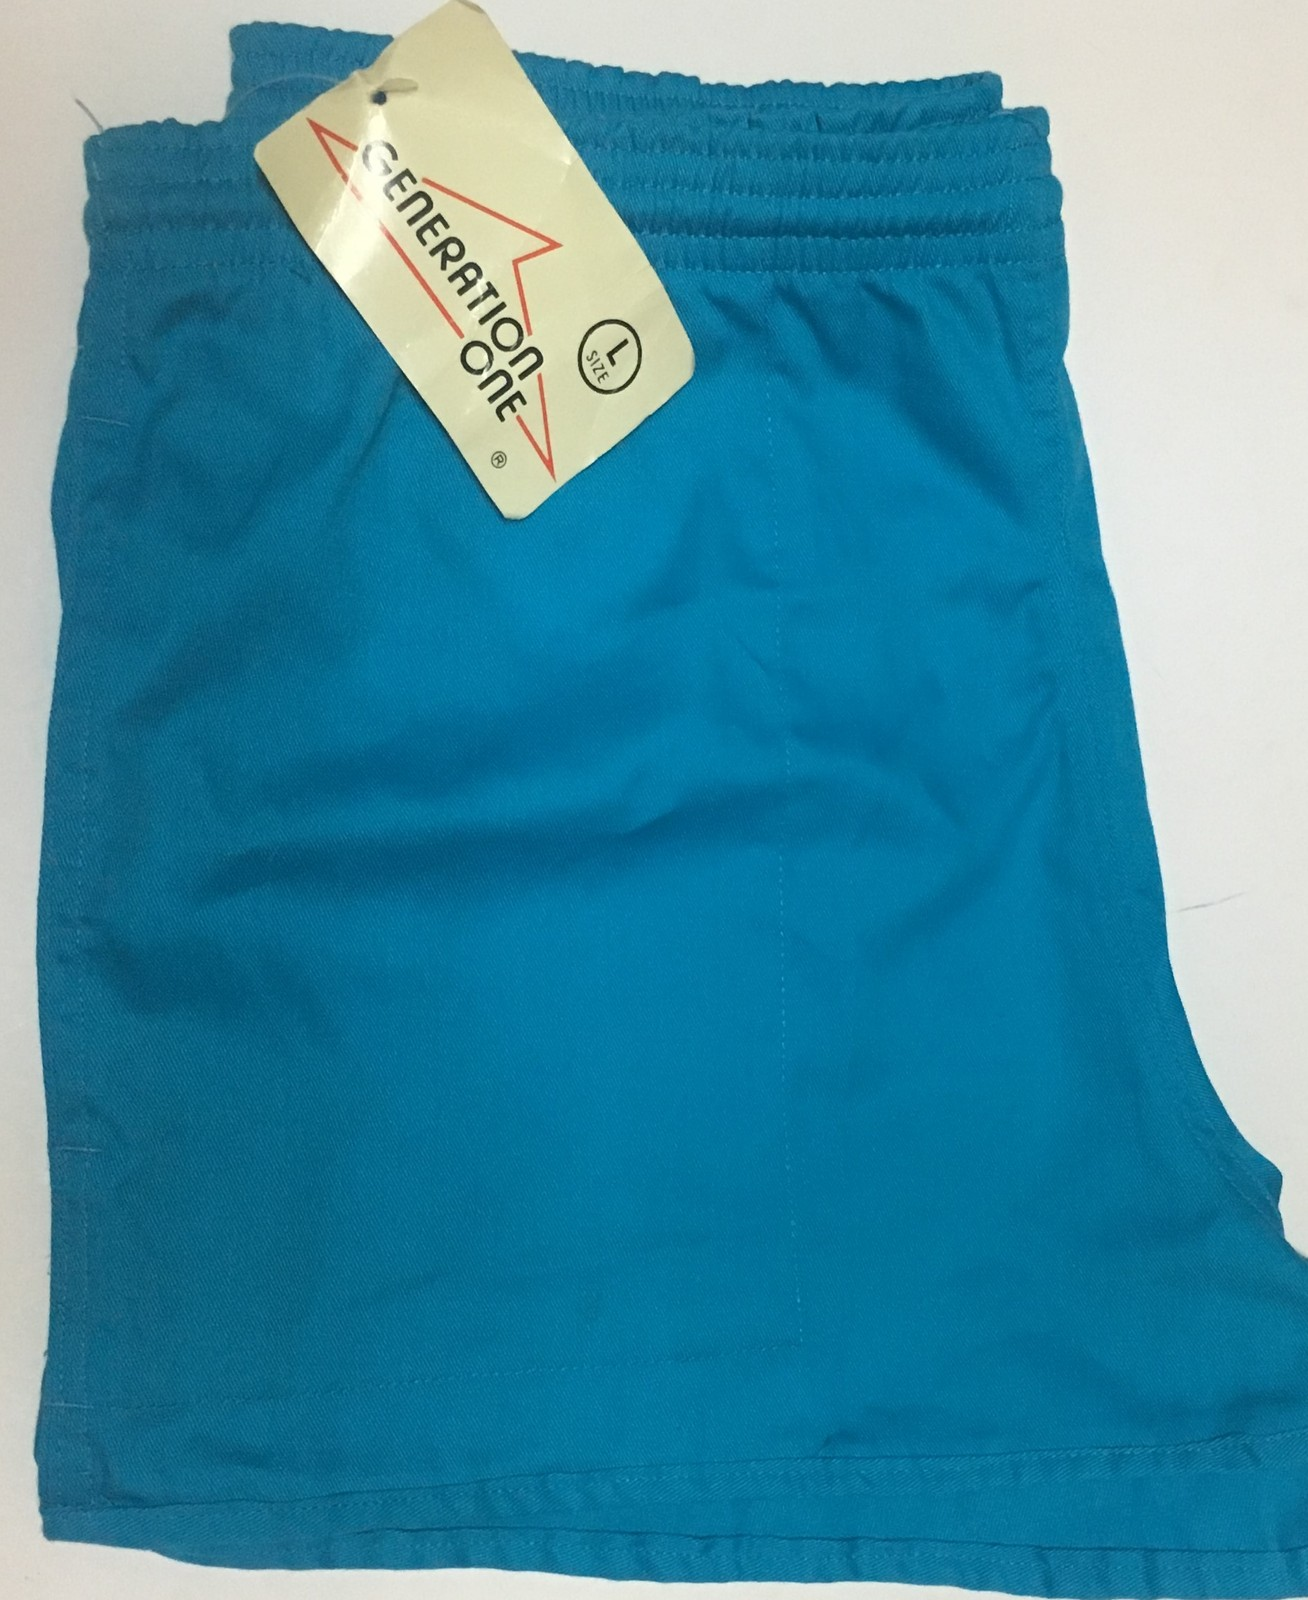 Generation One Women's Active Shorts Drawstring NWT Sz L Turquoise